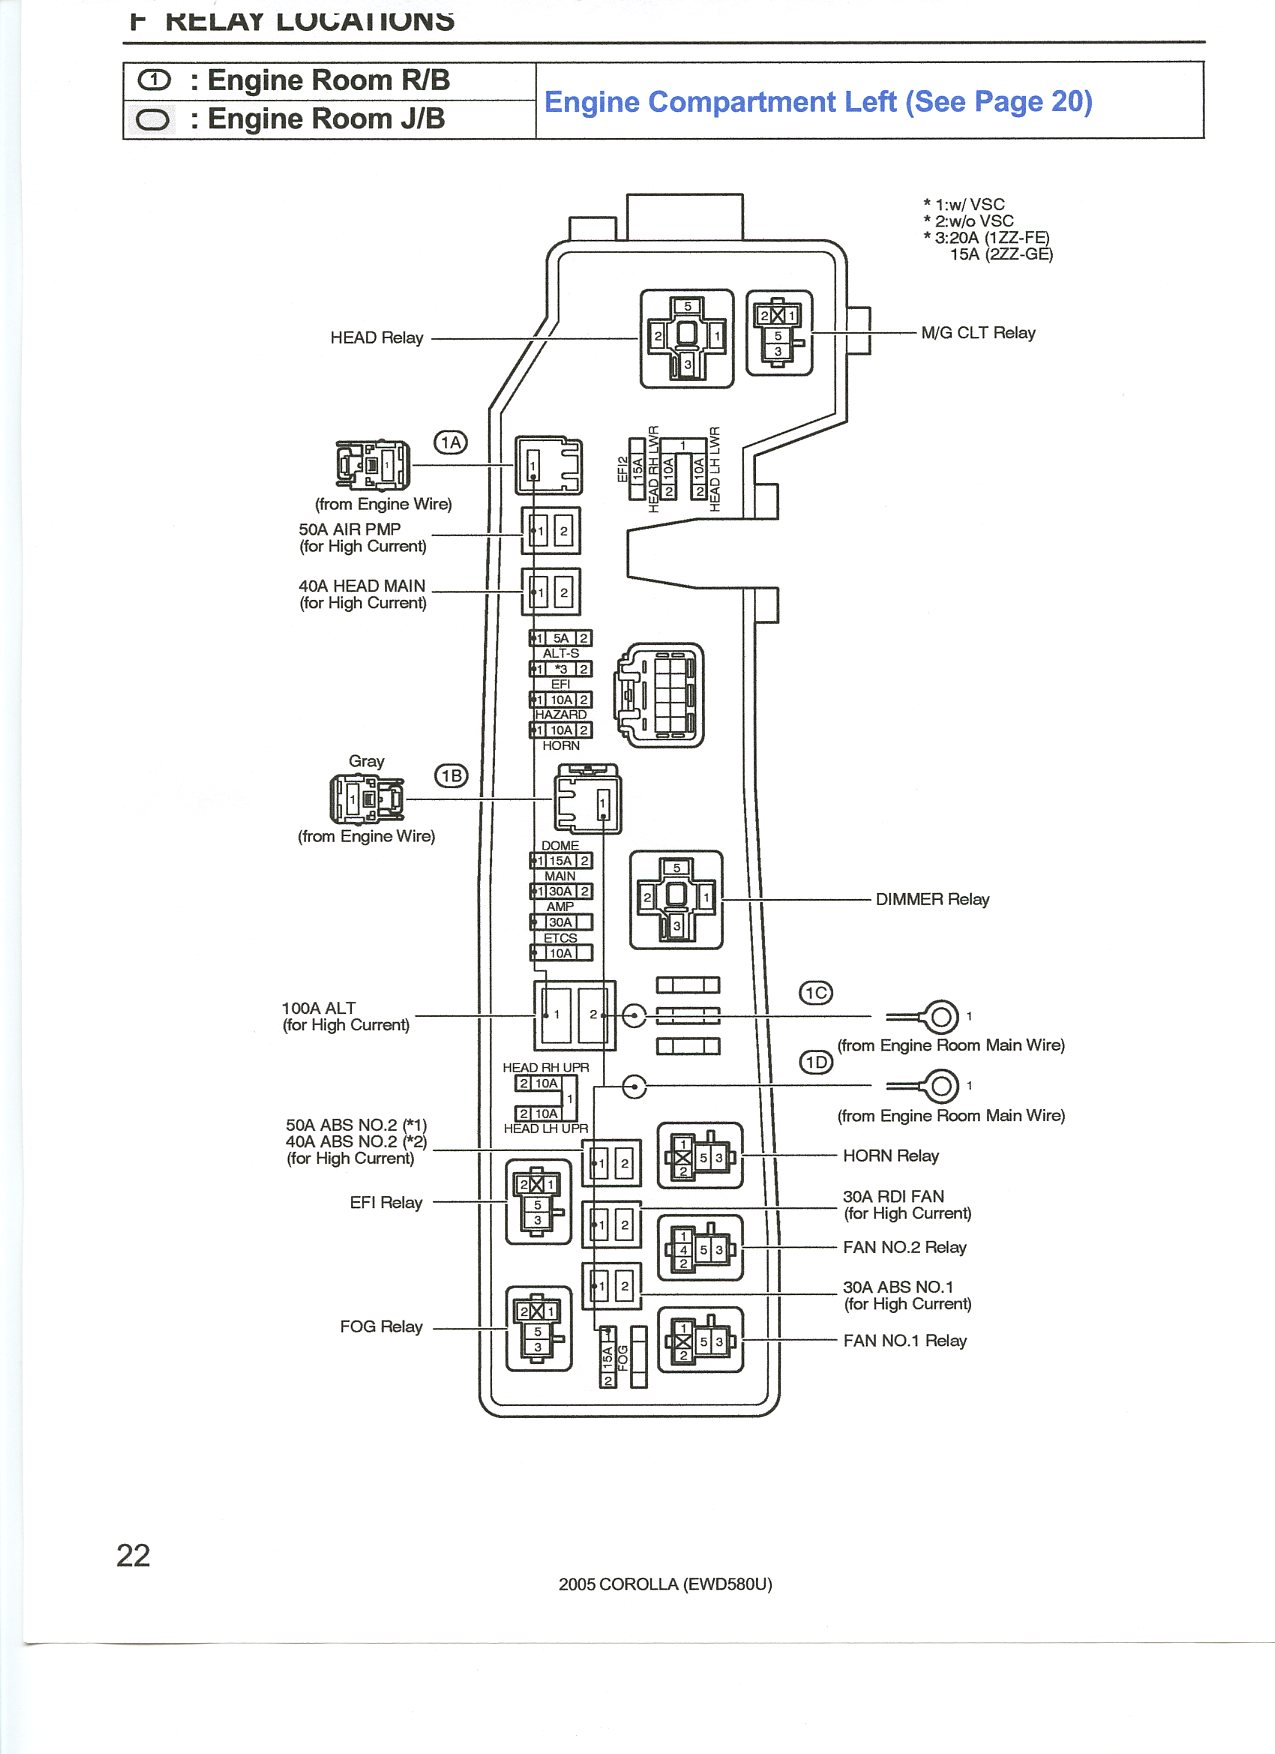 2005 toyota corolla fuse box diagram wiring library 2005 corolla fuse box diagram wiring diagram database 2006 toyota corolla fuse diagram 2005 corolla fuse